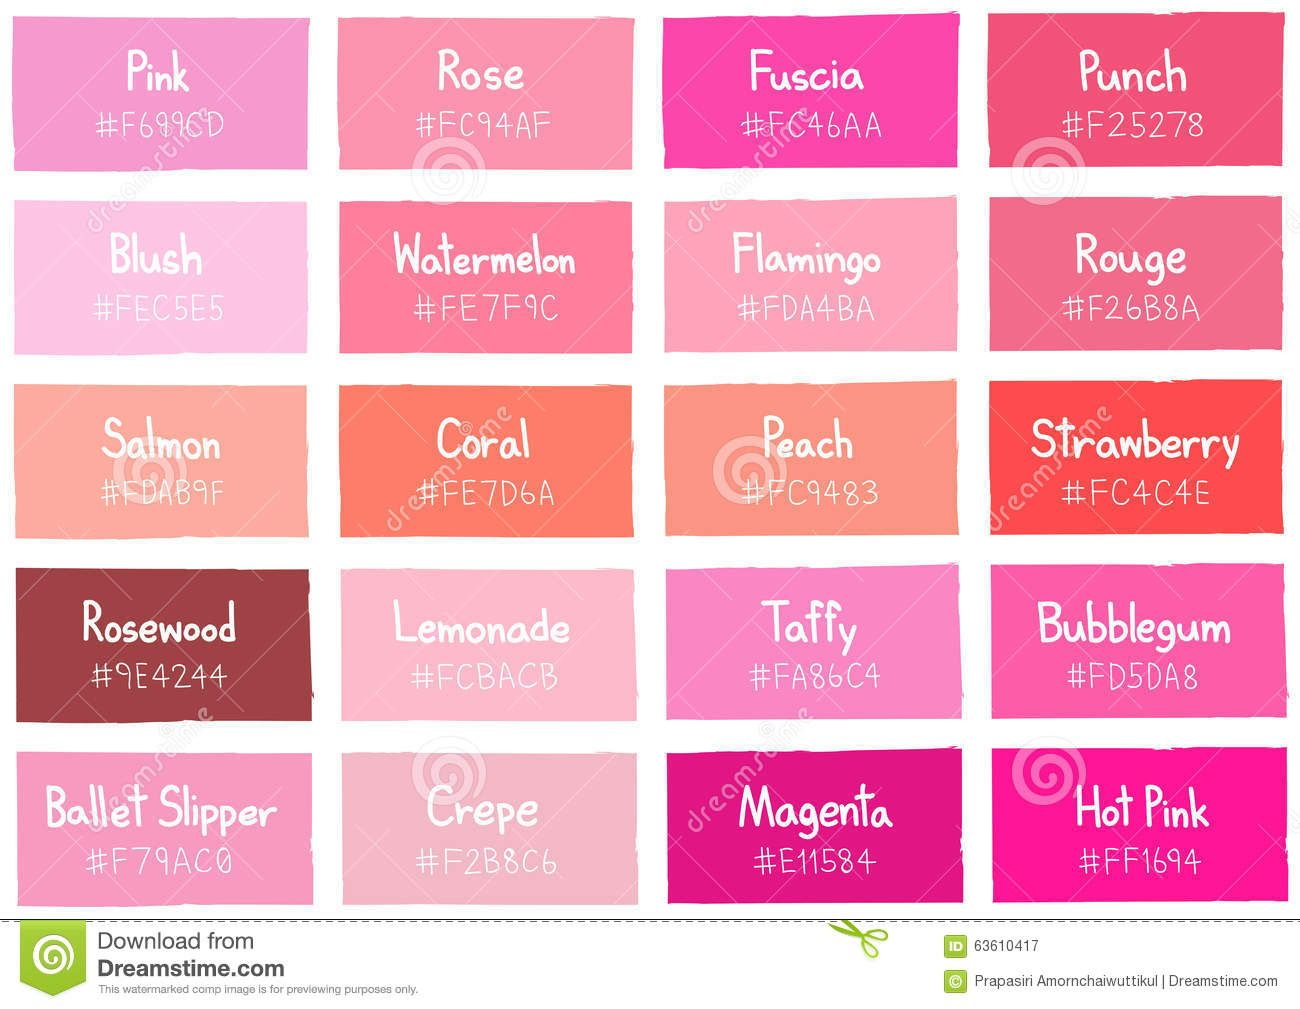 Blush pink color code images Shades of orange colour chart